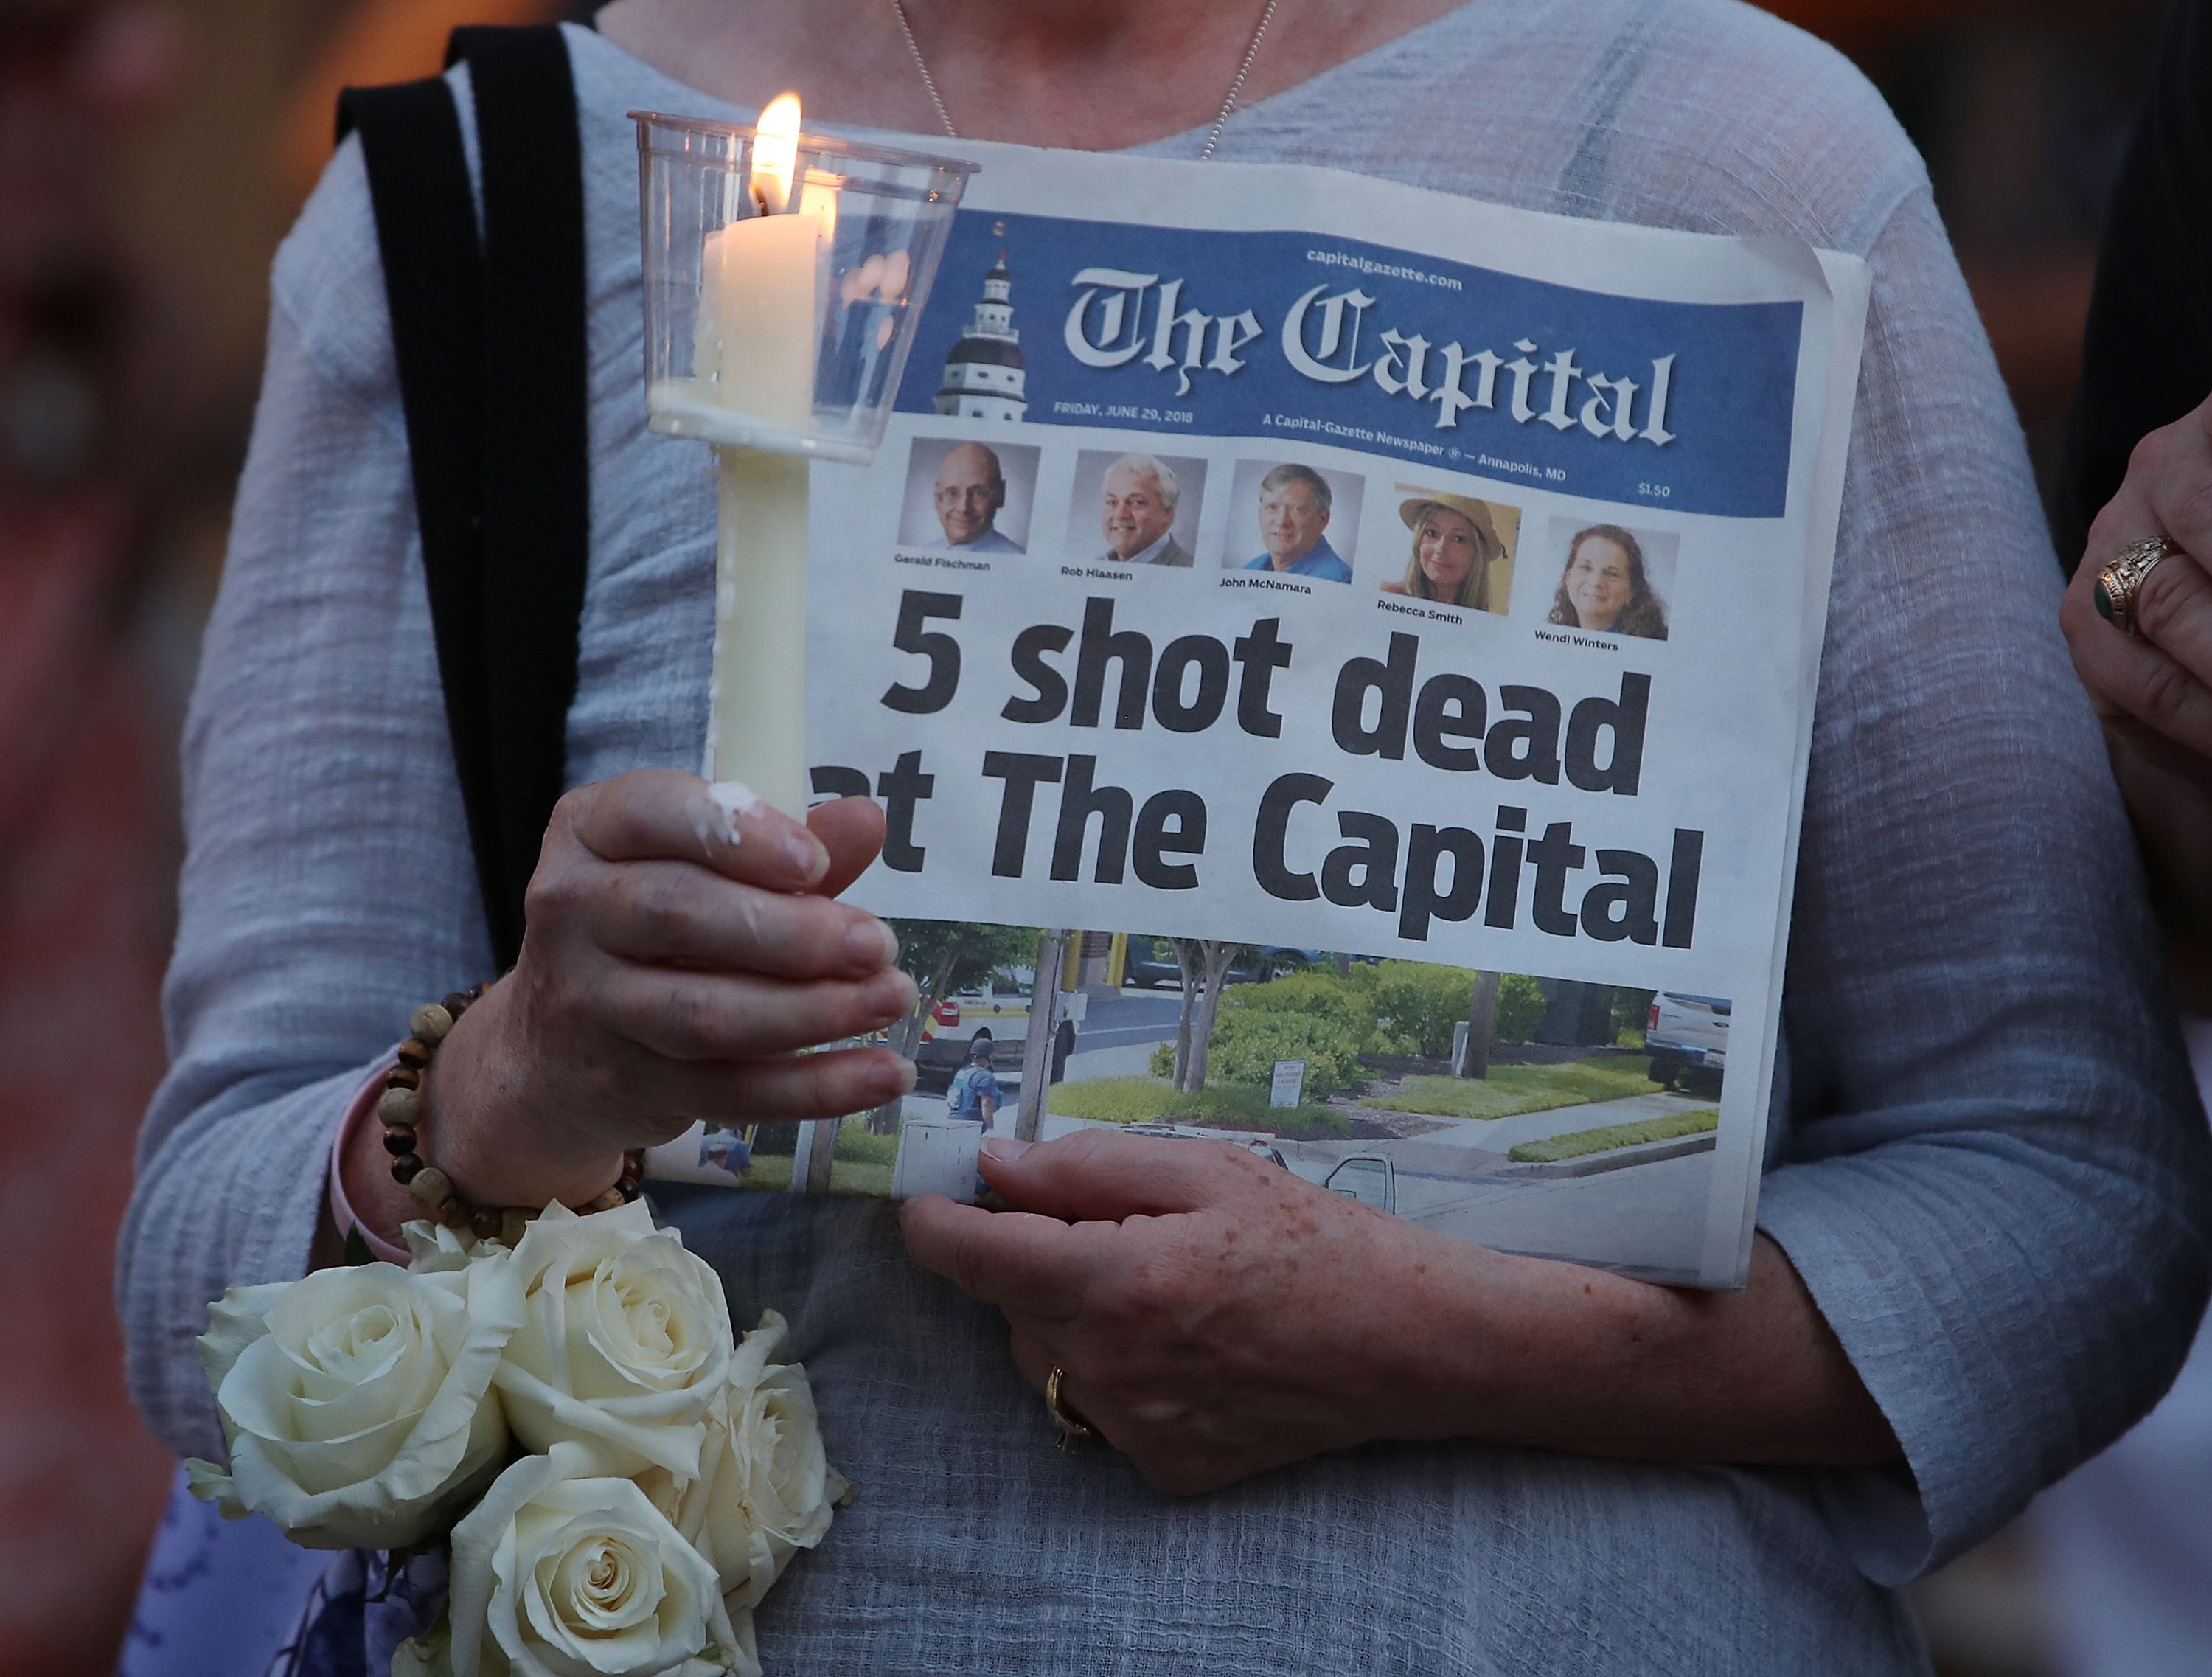 A woman holds the June 29, 2018 edition of the Capital Gazette newspaper during a candlelight vigil to honor the 5 people who were shot and killed at the paper's offices in Annapolis, Maryland a day earlier.